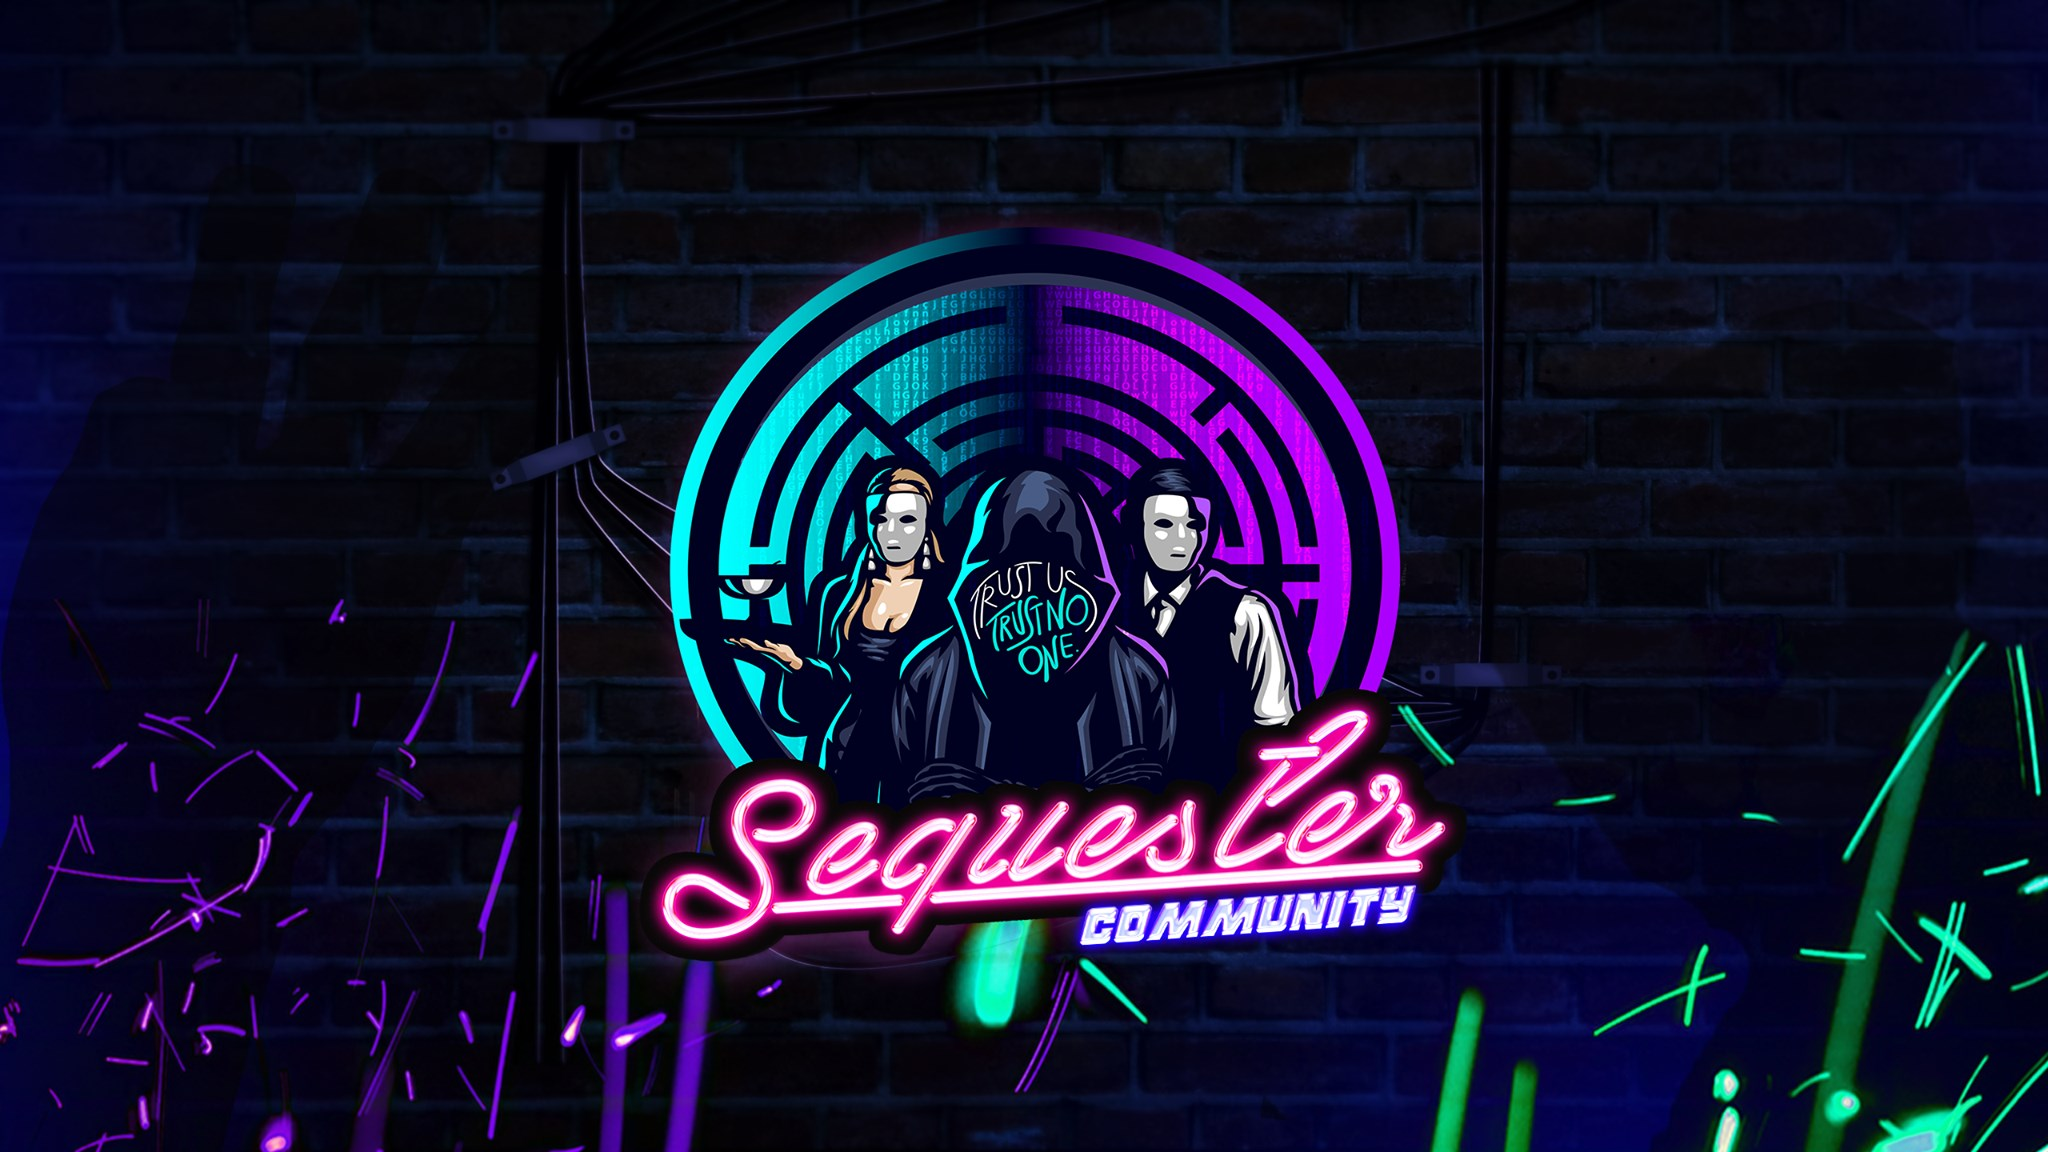 JOIN THE FACEBOOK GROUP! - The facebook group is the best place to interact with other Sequester lovers and alumni. It is also the only place to sign up for Sequester Mini Games!